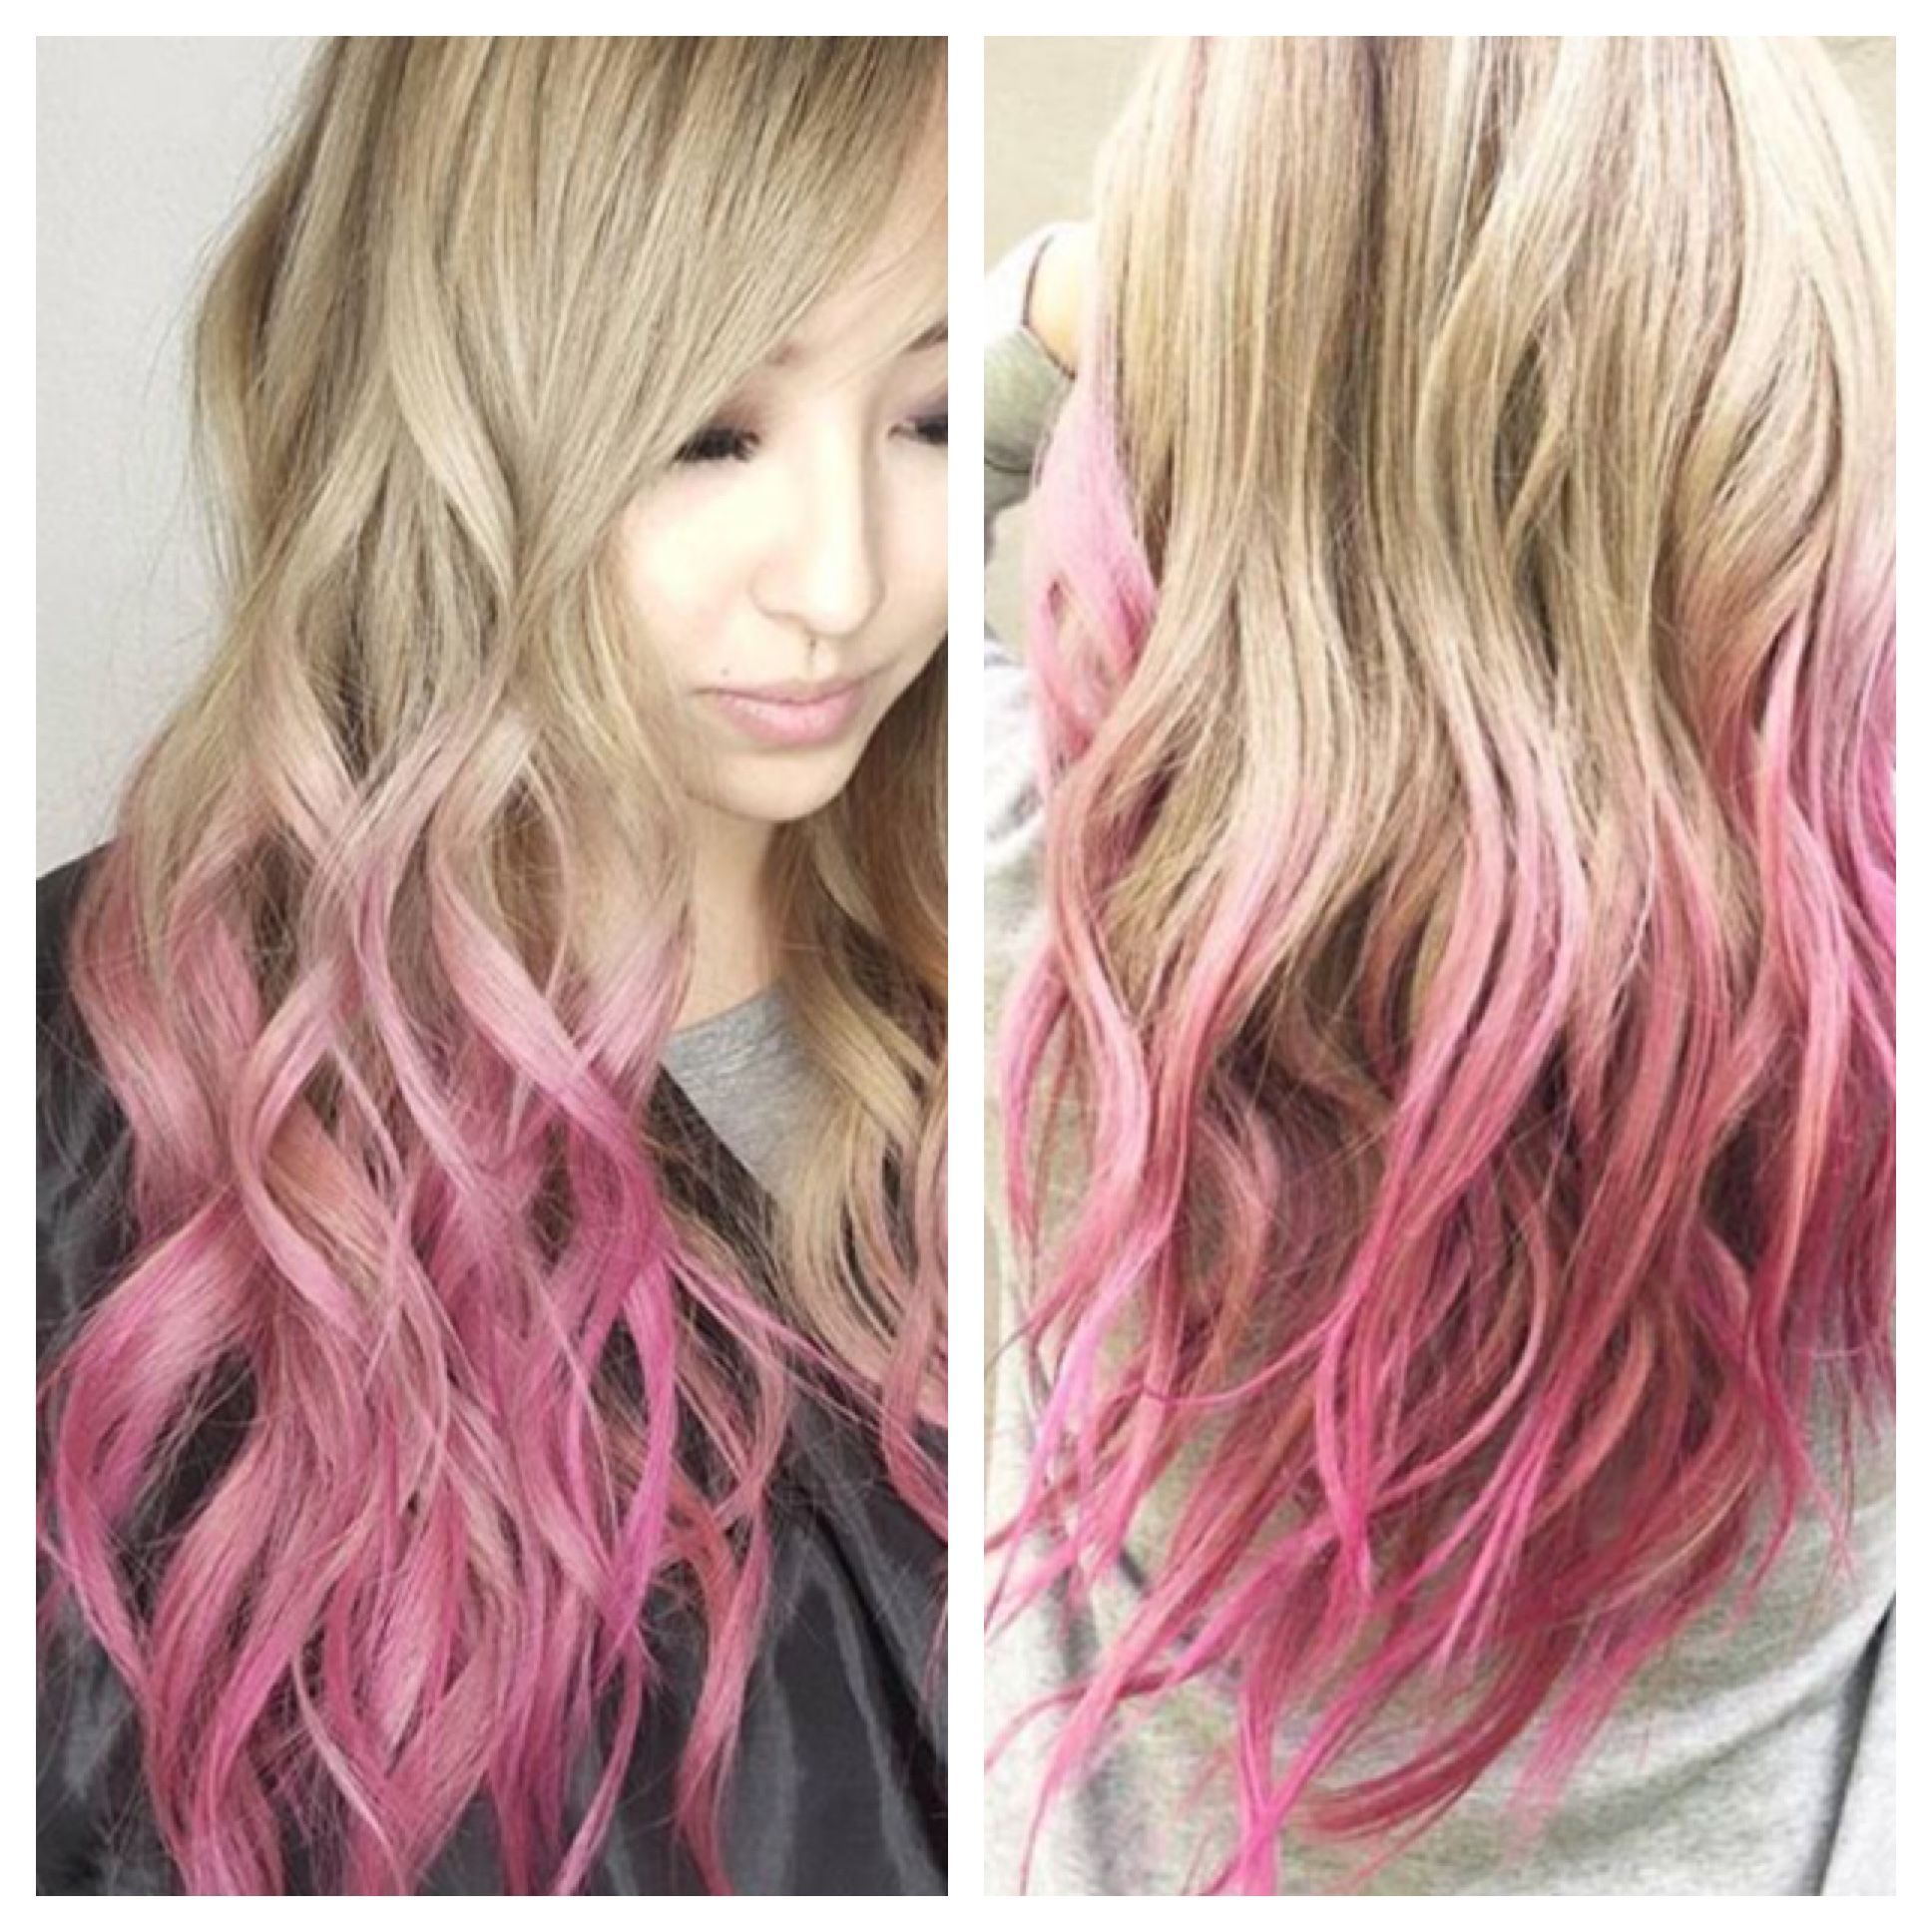 Dip Dye Pink Ends Ombre Pink With Blonde Color Bleed Ends There Are So Pink Blonde Hair Dyed Blonde Hair Blonde Dip Dye